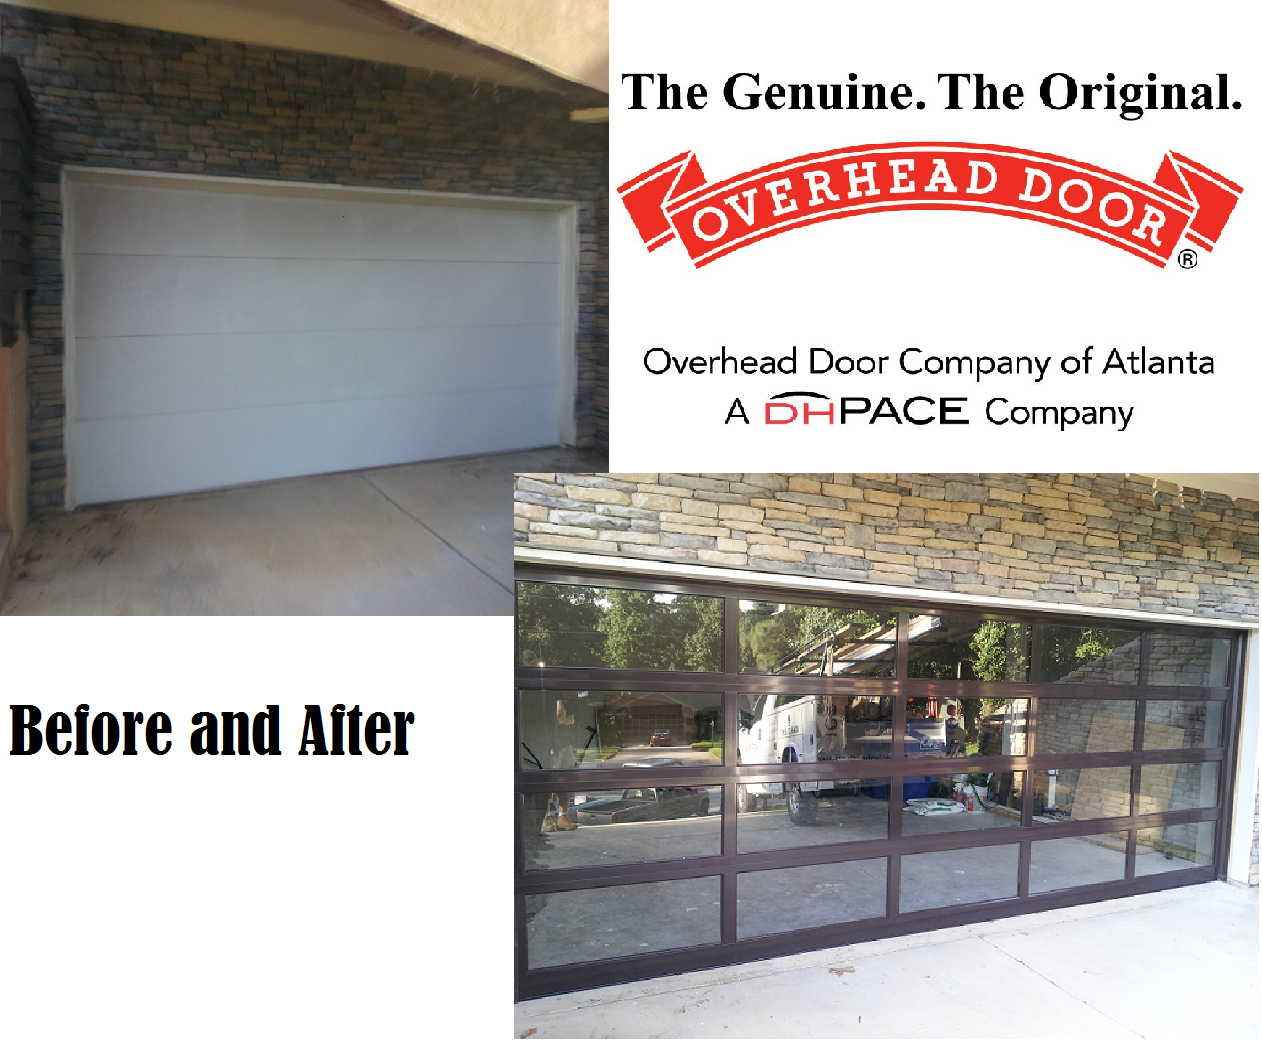 Overhead Door Company : Overhead door company of greater hall county in